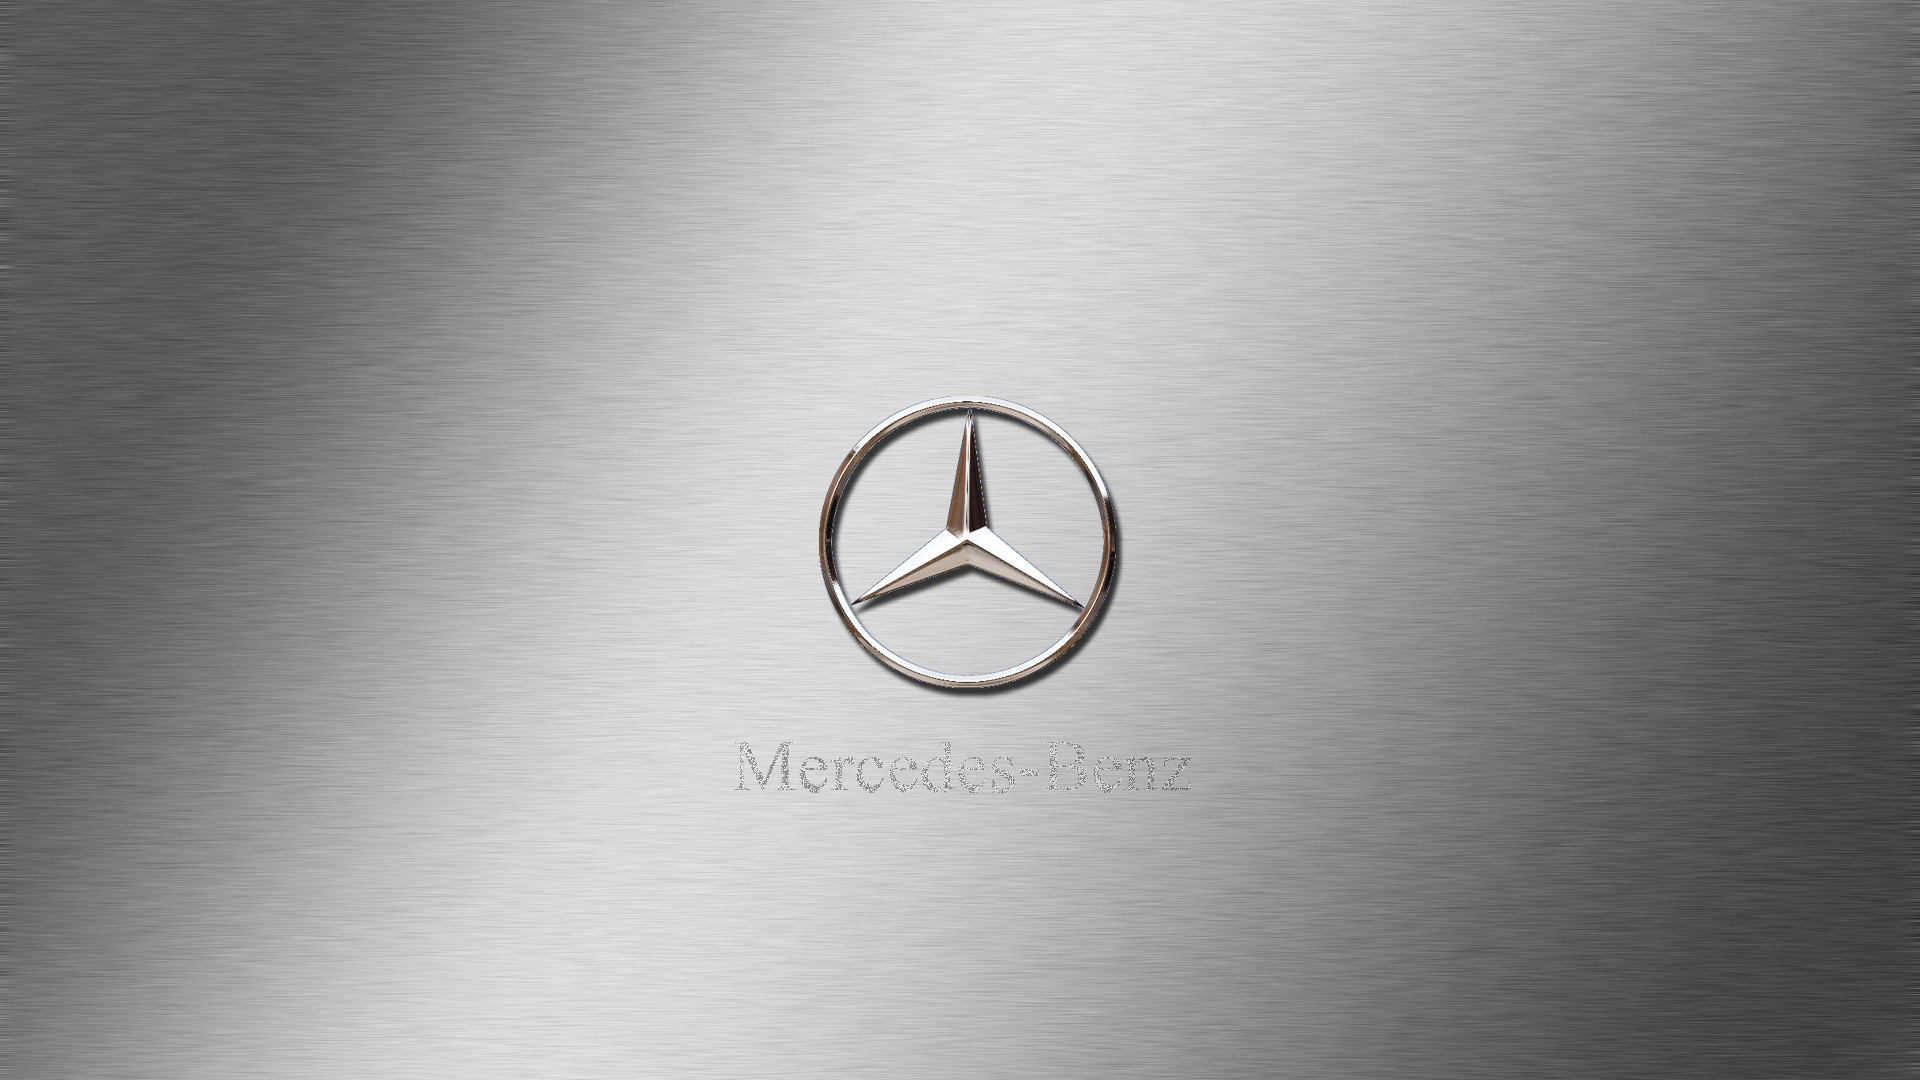 Mercedes Benz Logo Wallpapers (60+